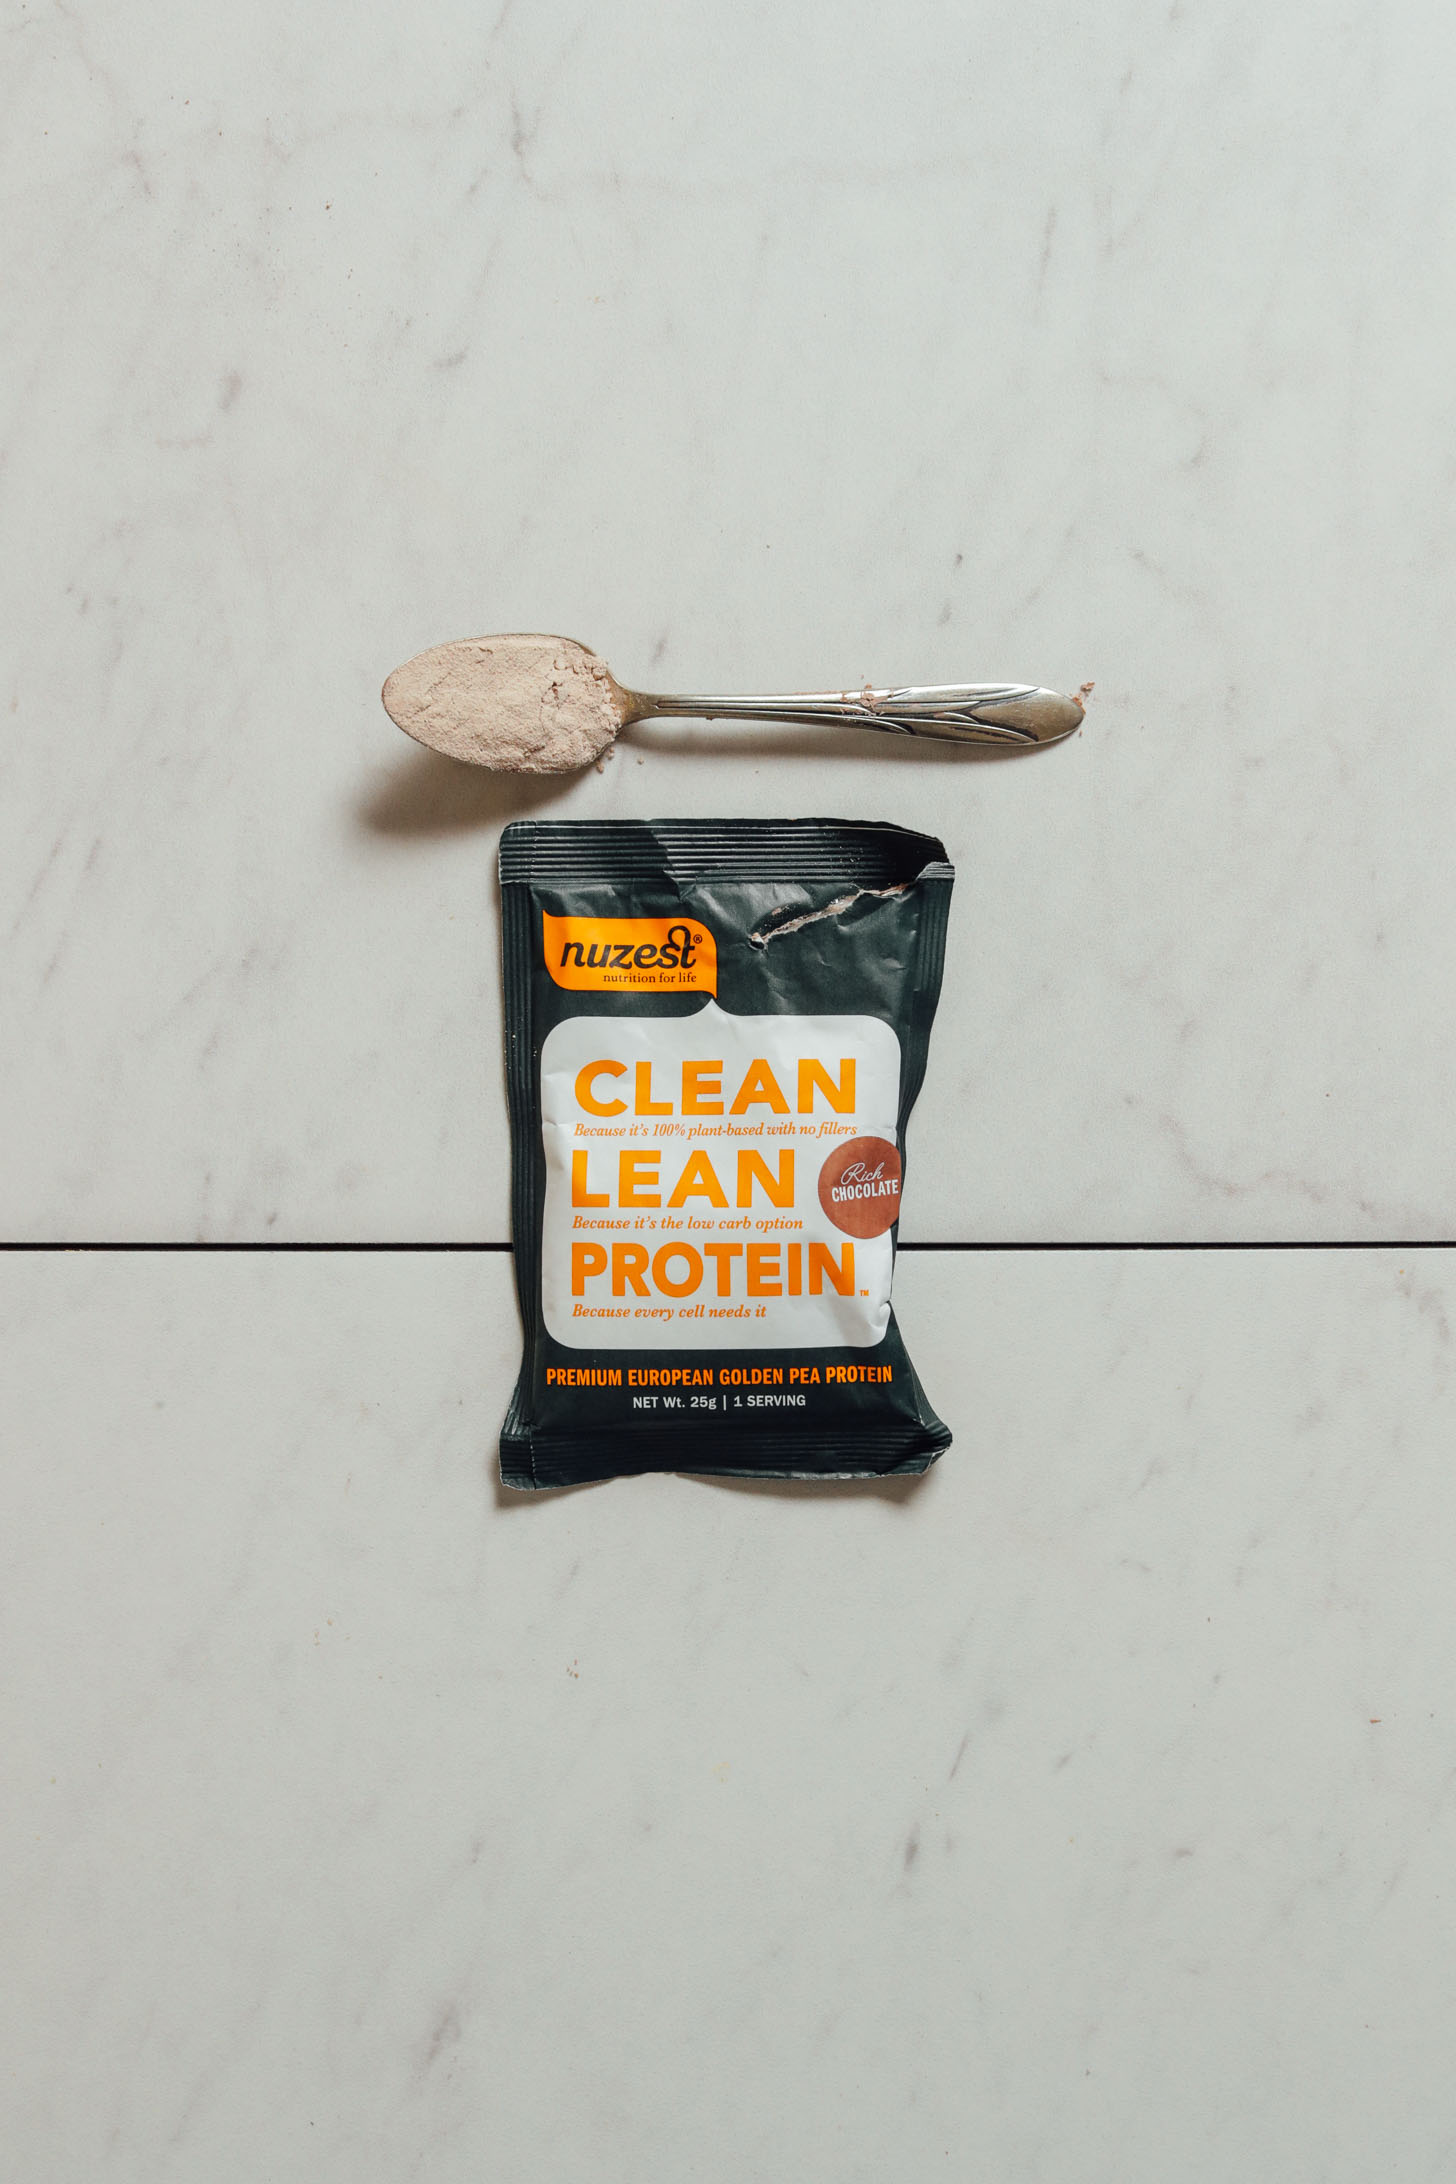 Pouch of Nuzest Chocolate Protein Powder for our vegan protein powder review